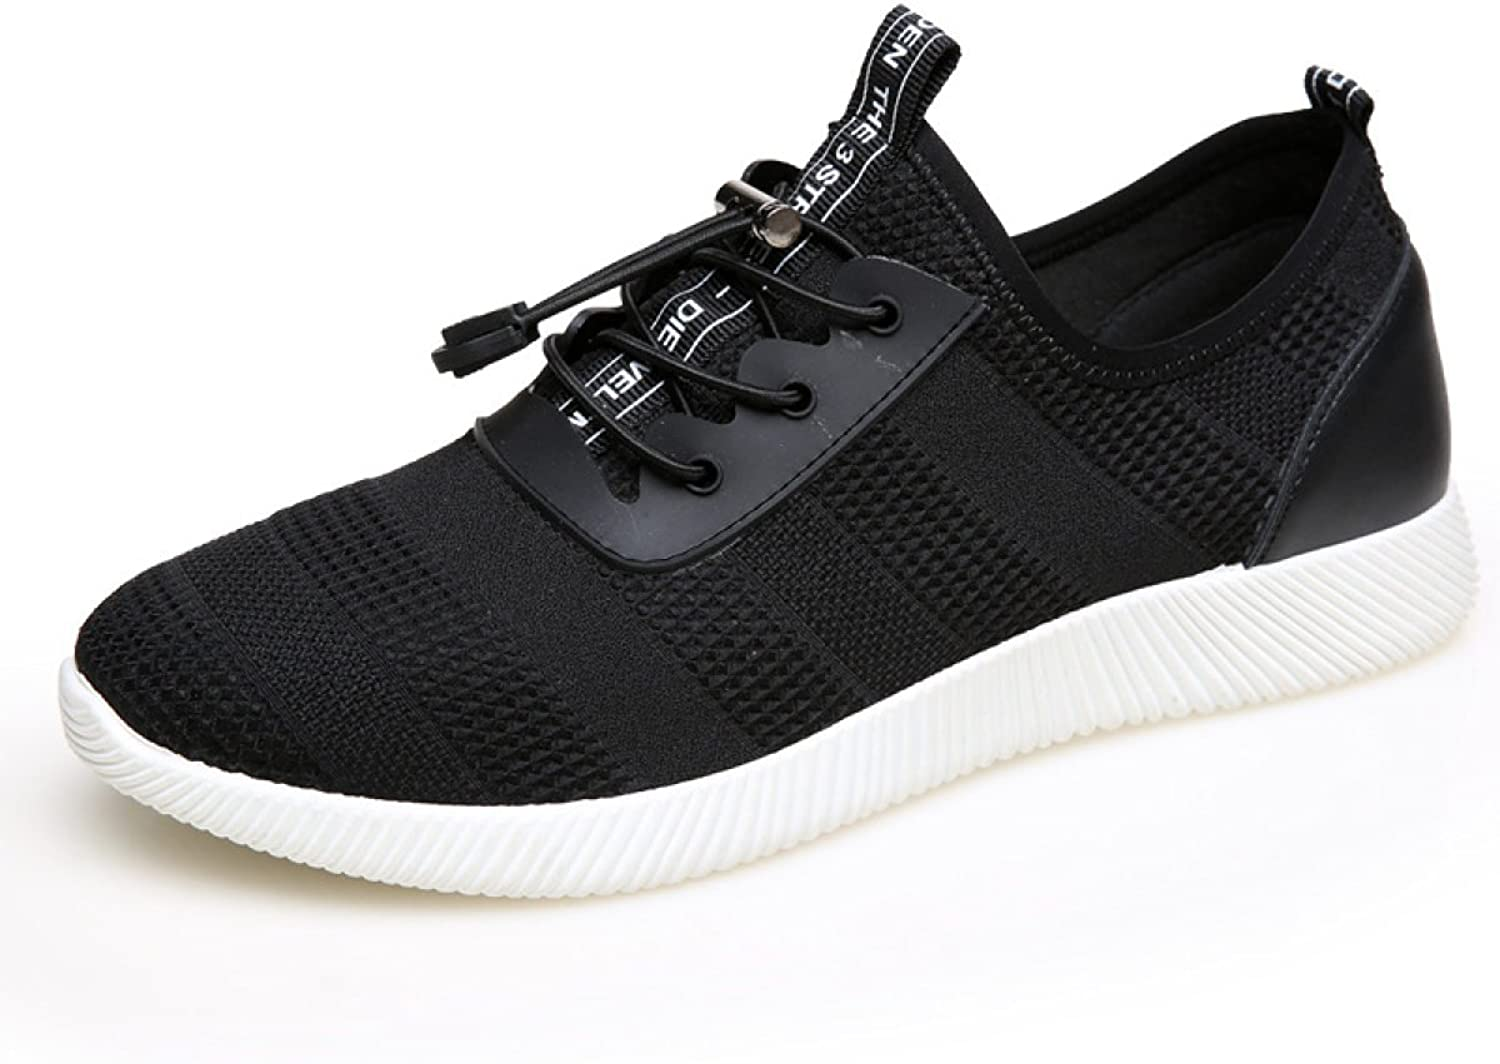 Men Casual Running shoes Wild Youth Men's shoes England Light Mesh Breathable shoes